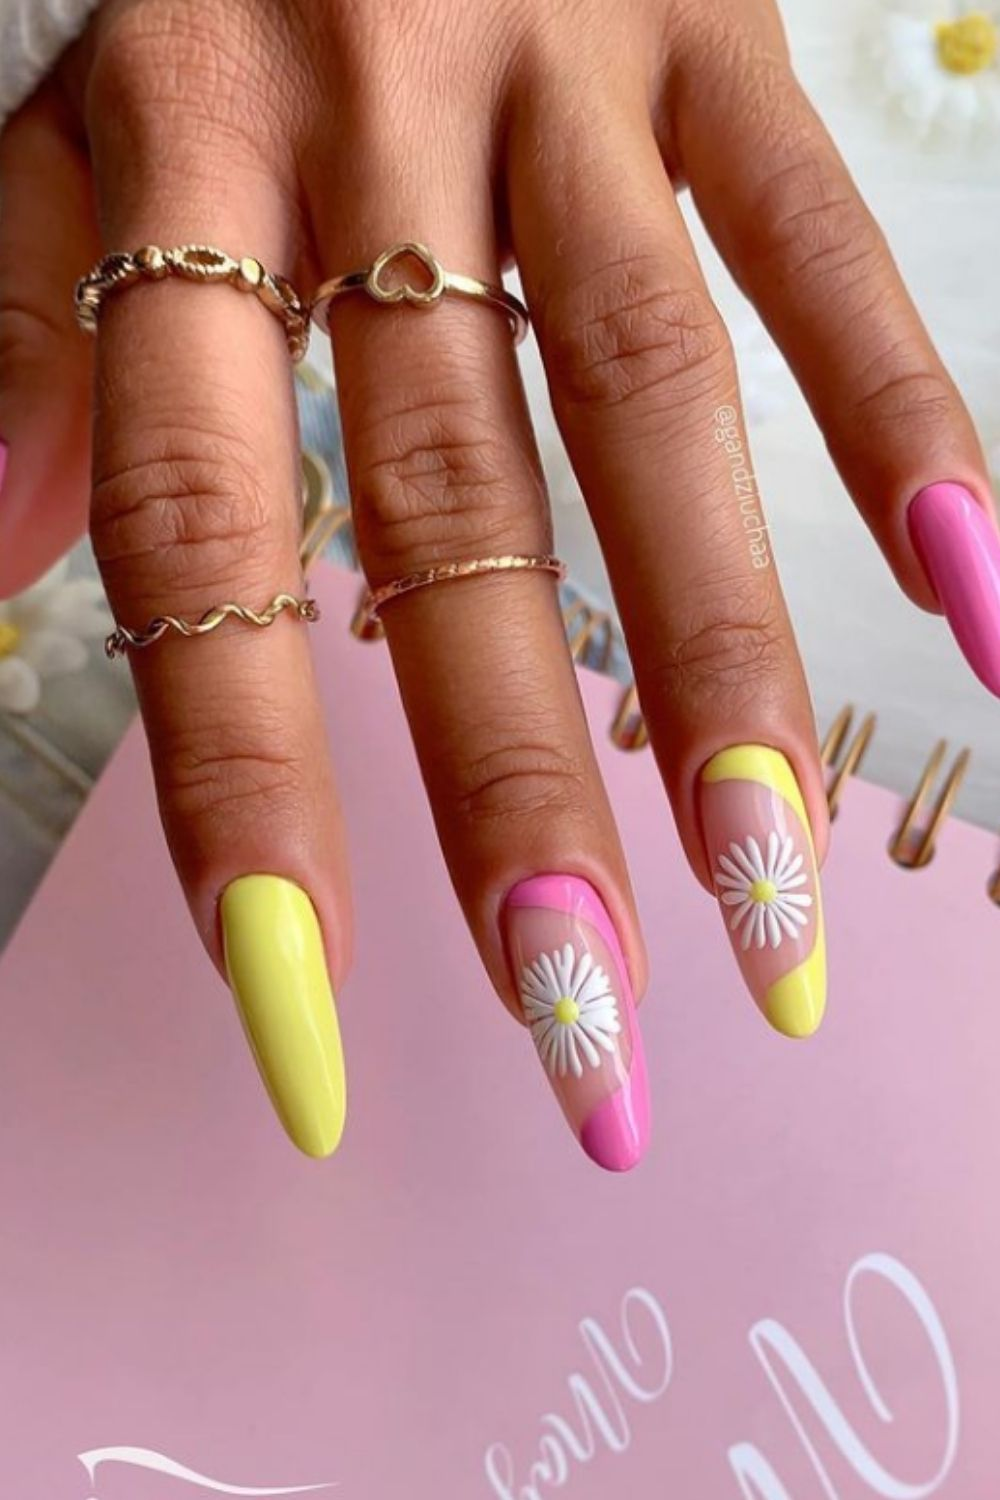 Pink and yellow almond nails with flowers